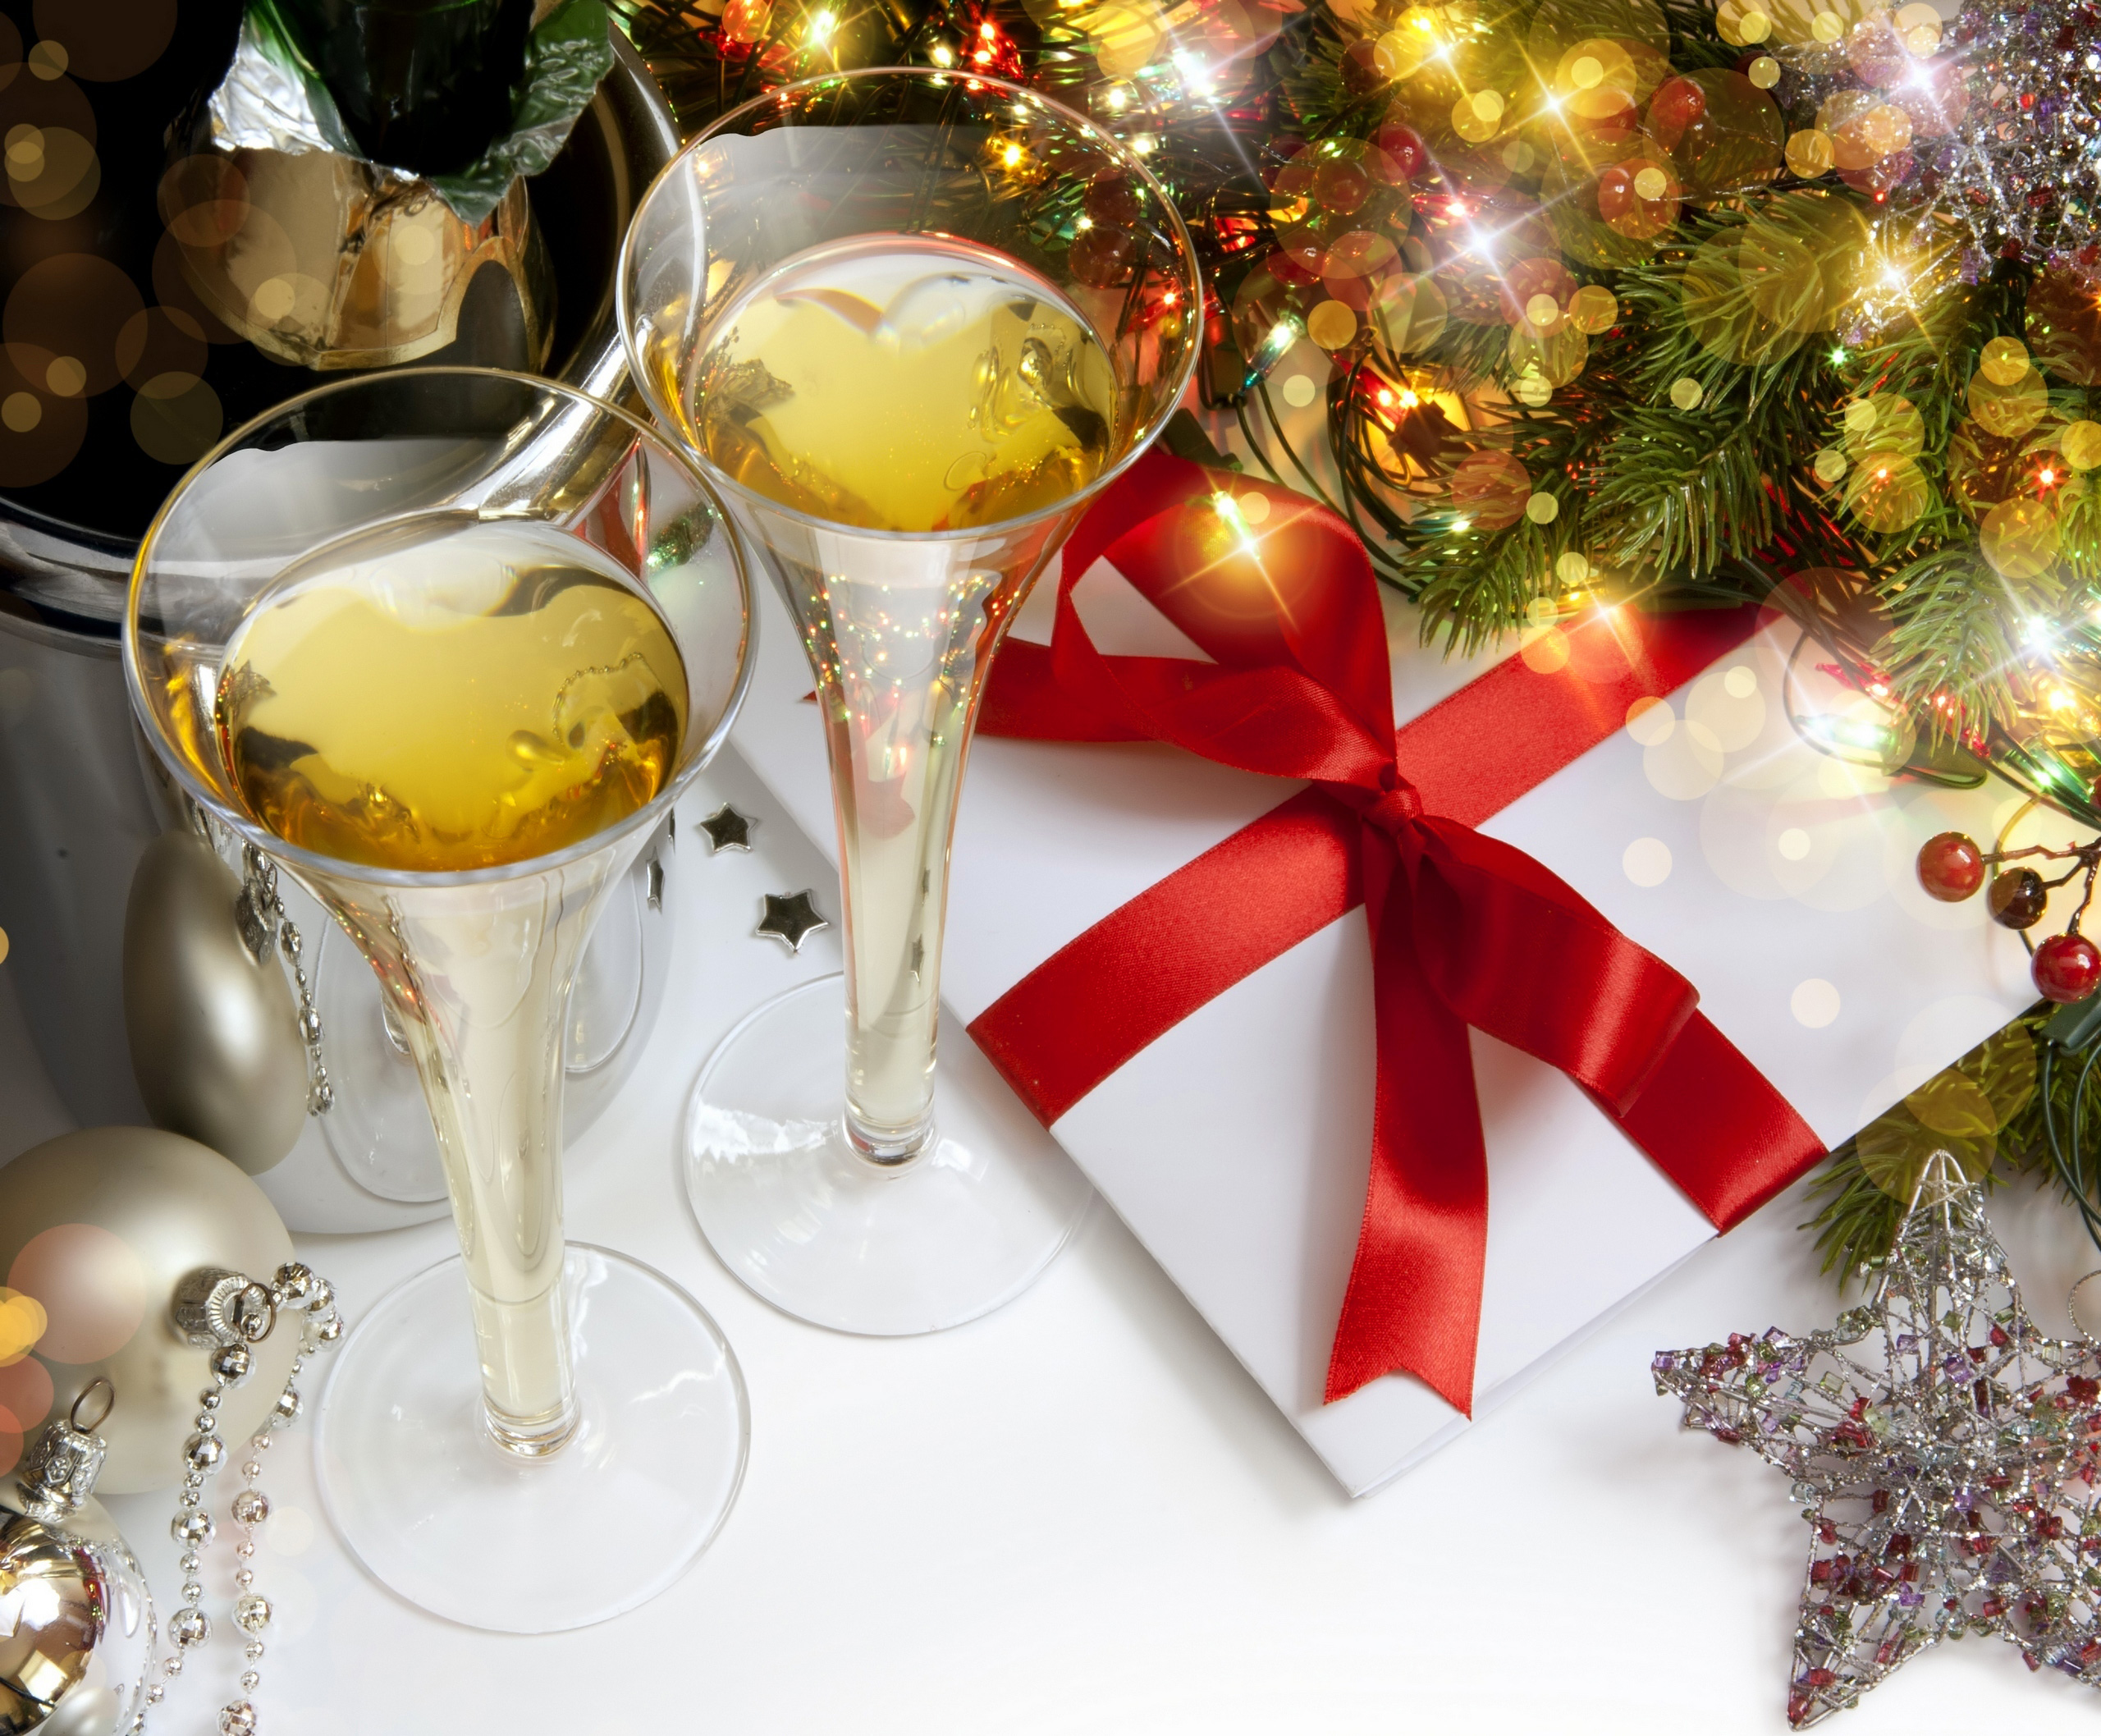 Champaign clipart christmas. Background with champagne glasses